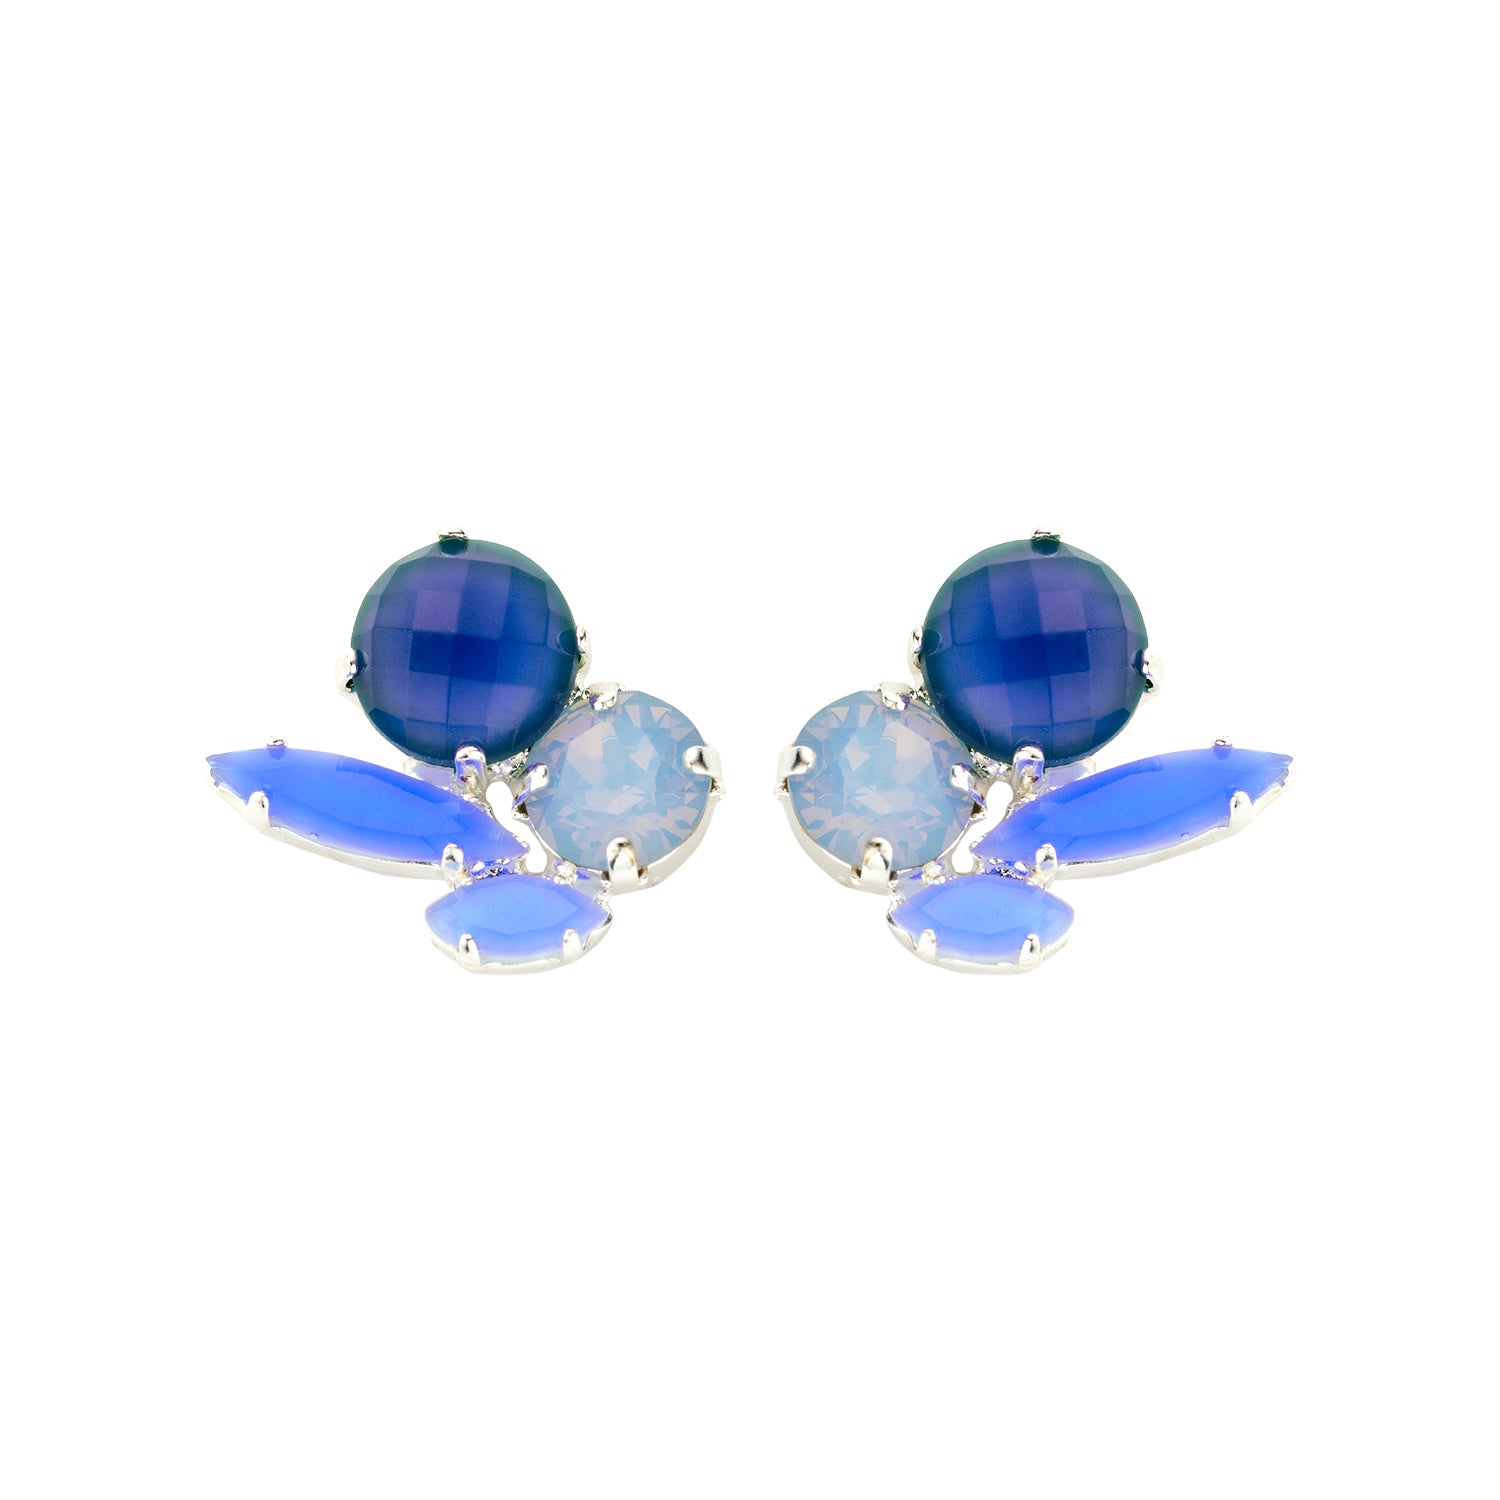 Cleo short grey blue earrings - Souvenirs de Pomme